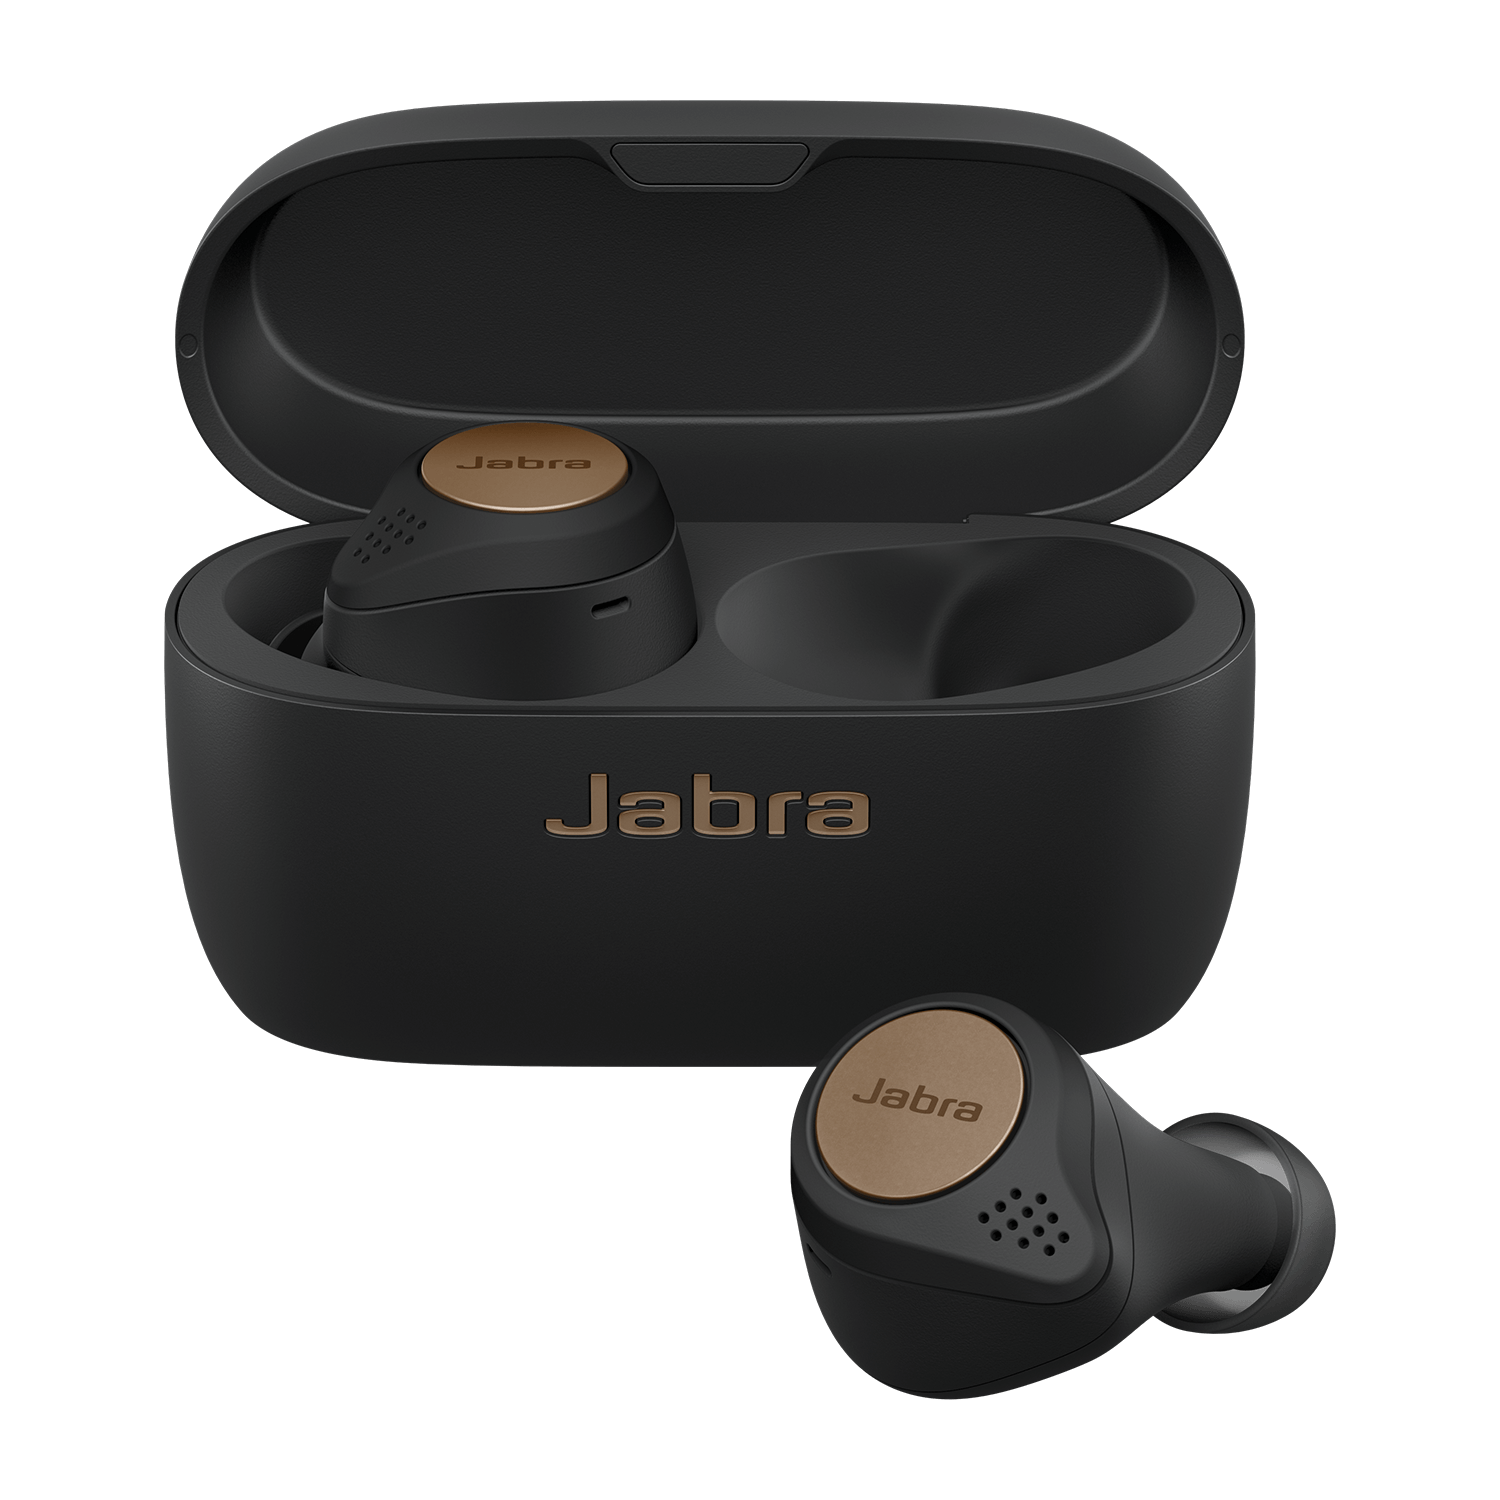 Jabra S Elite Active 75t Earbuds Are Going In Hard On Customisation